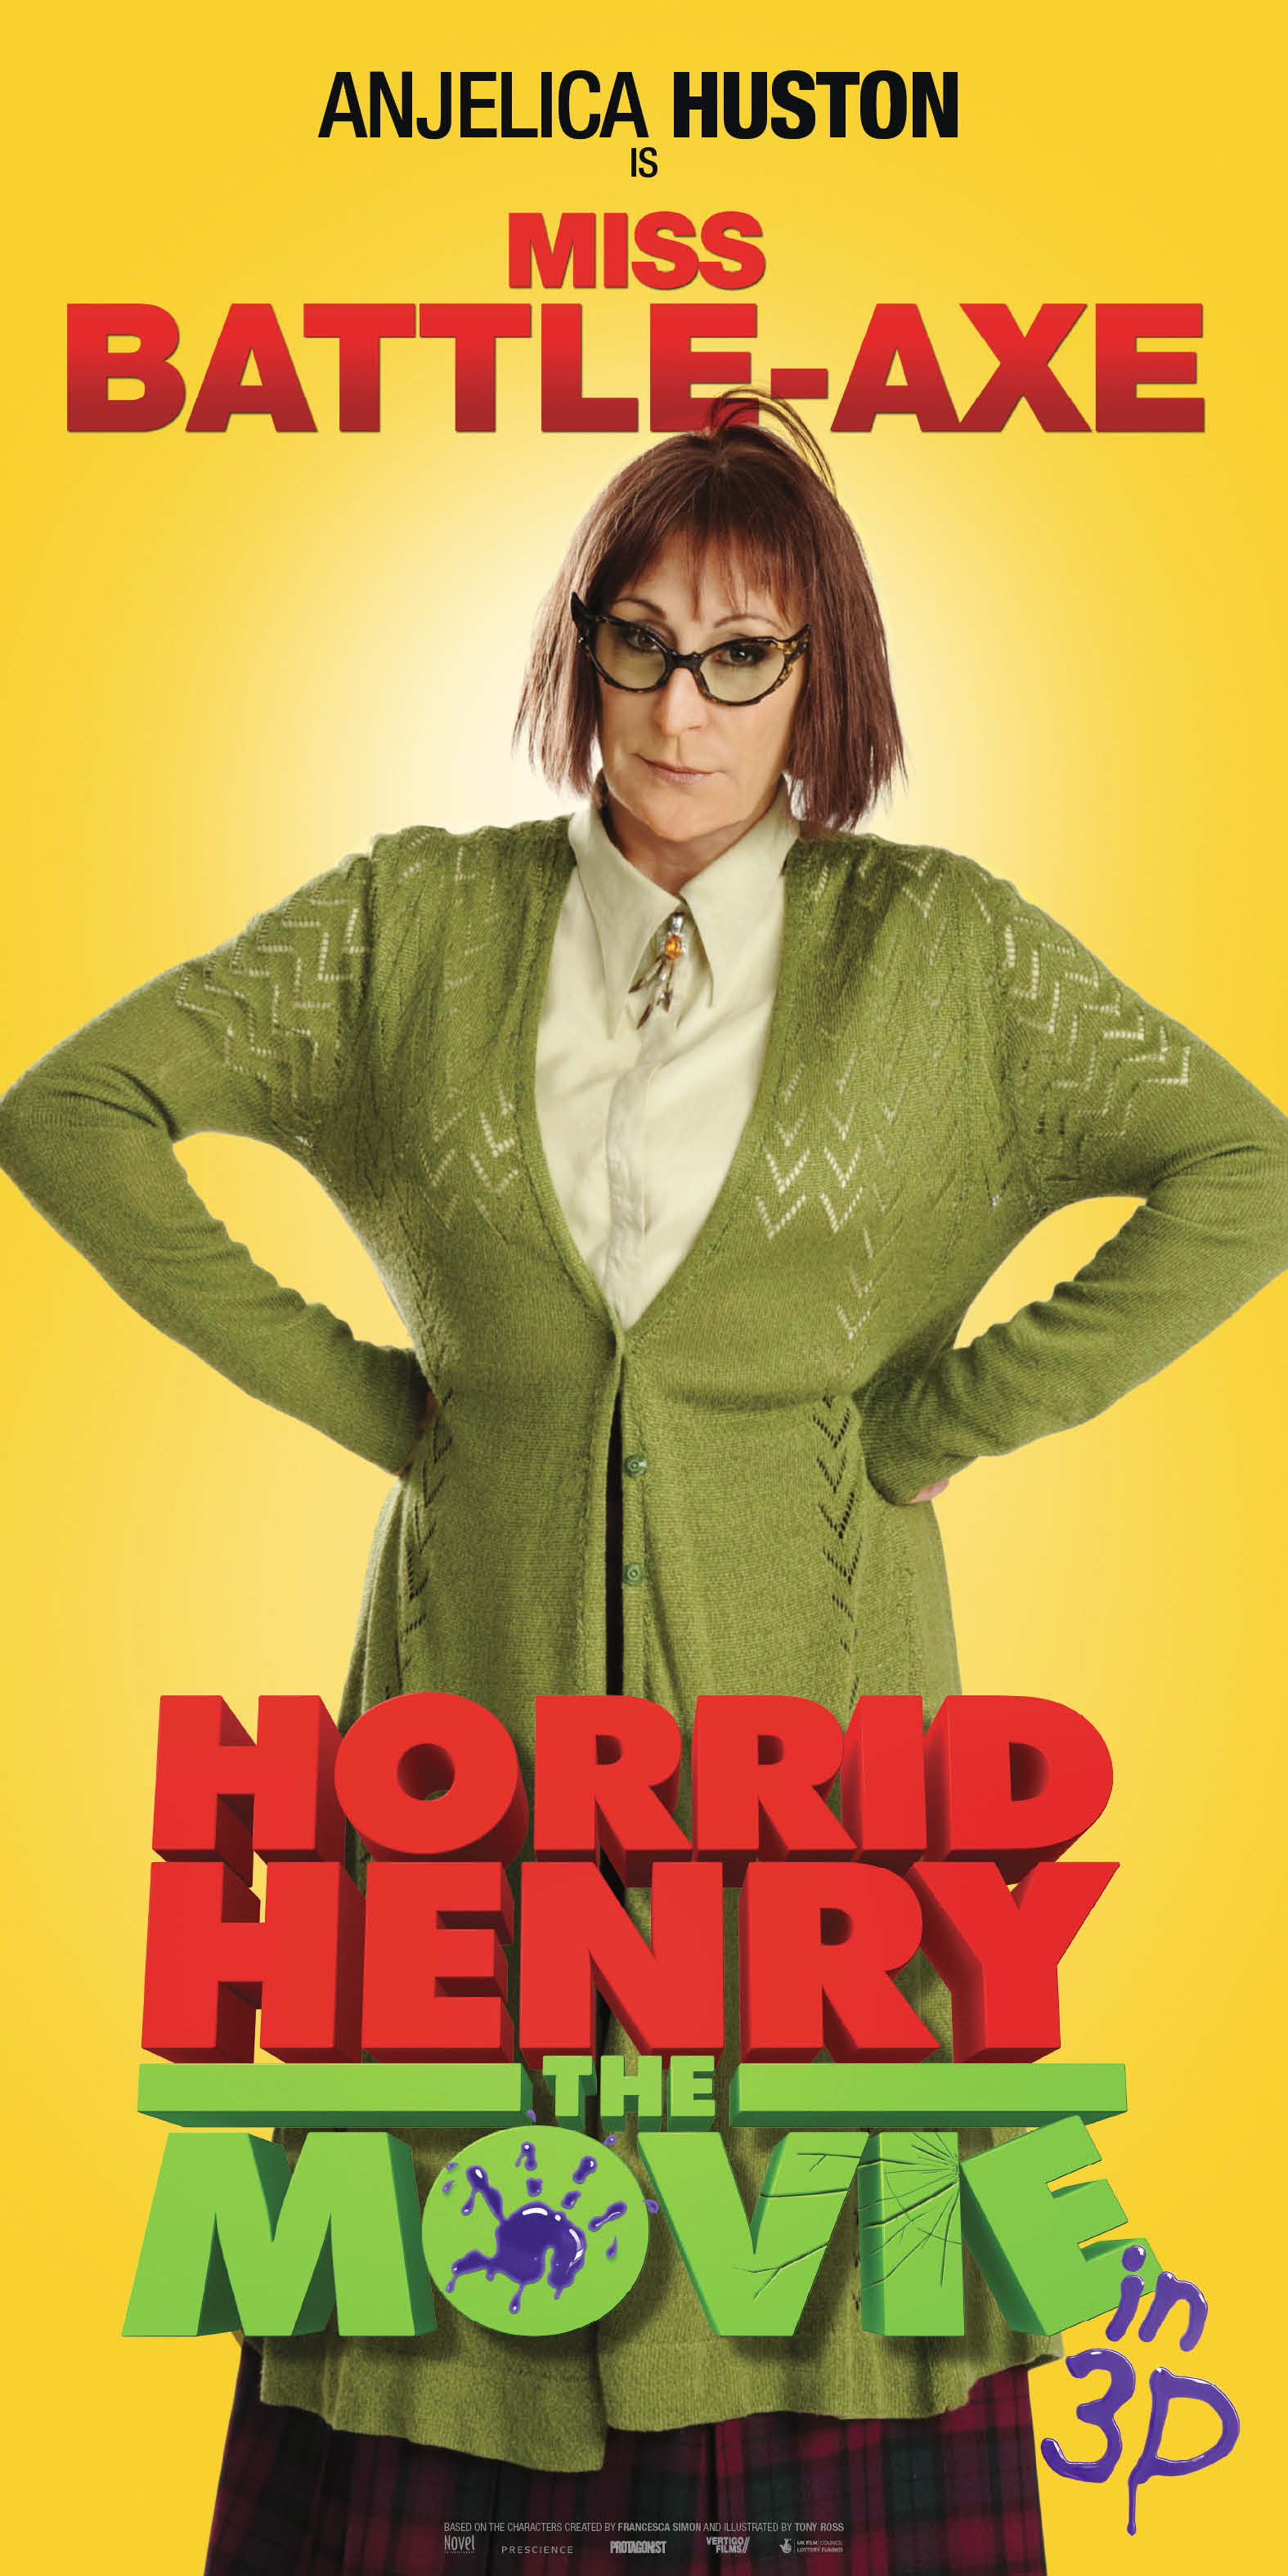 9 New Character Banners Released For Horrid Henry The Movie 3D